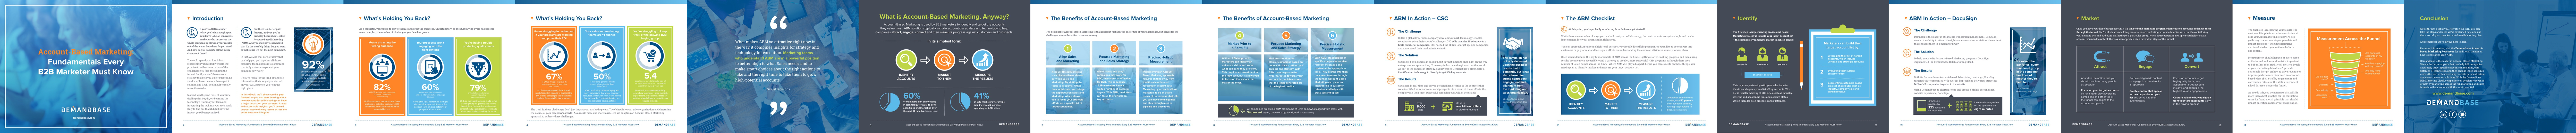 Account-Based Marketing: Fundamentals Every B2B Marketer Must Know